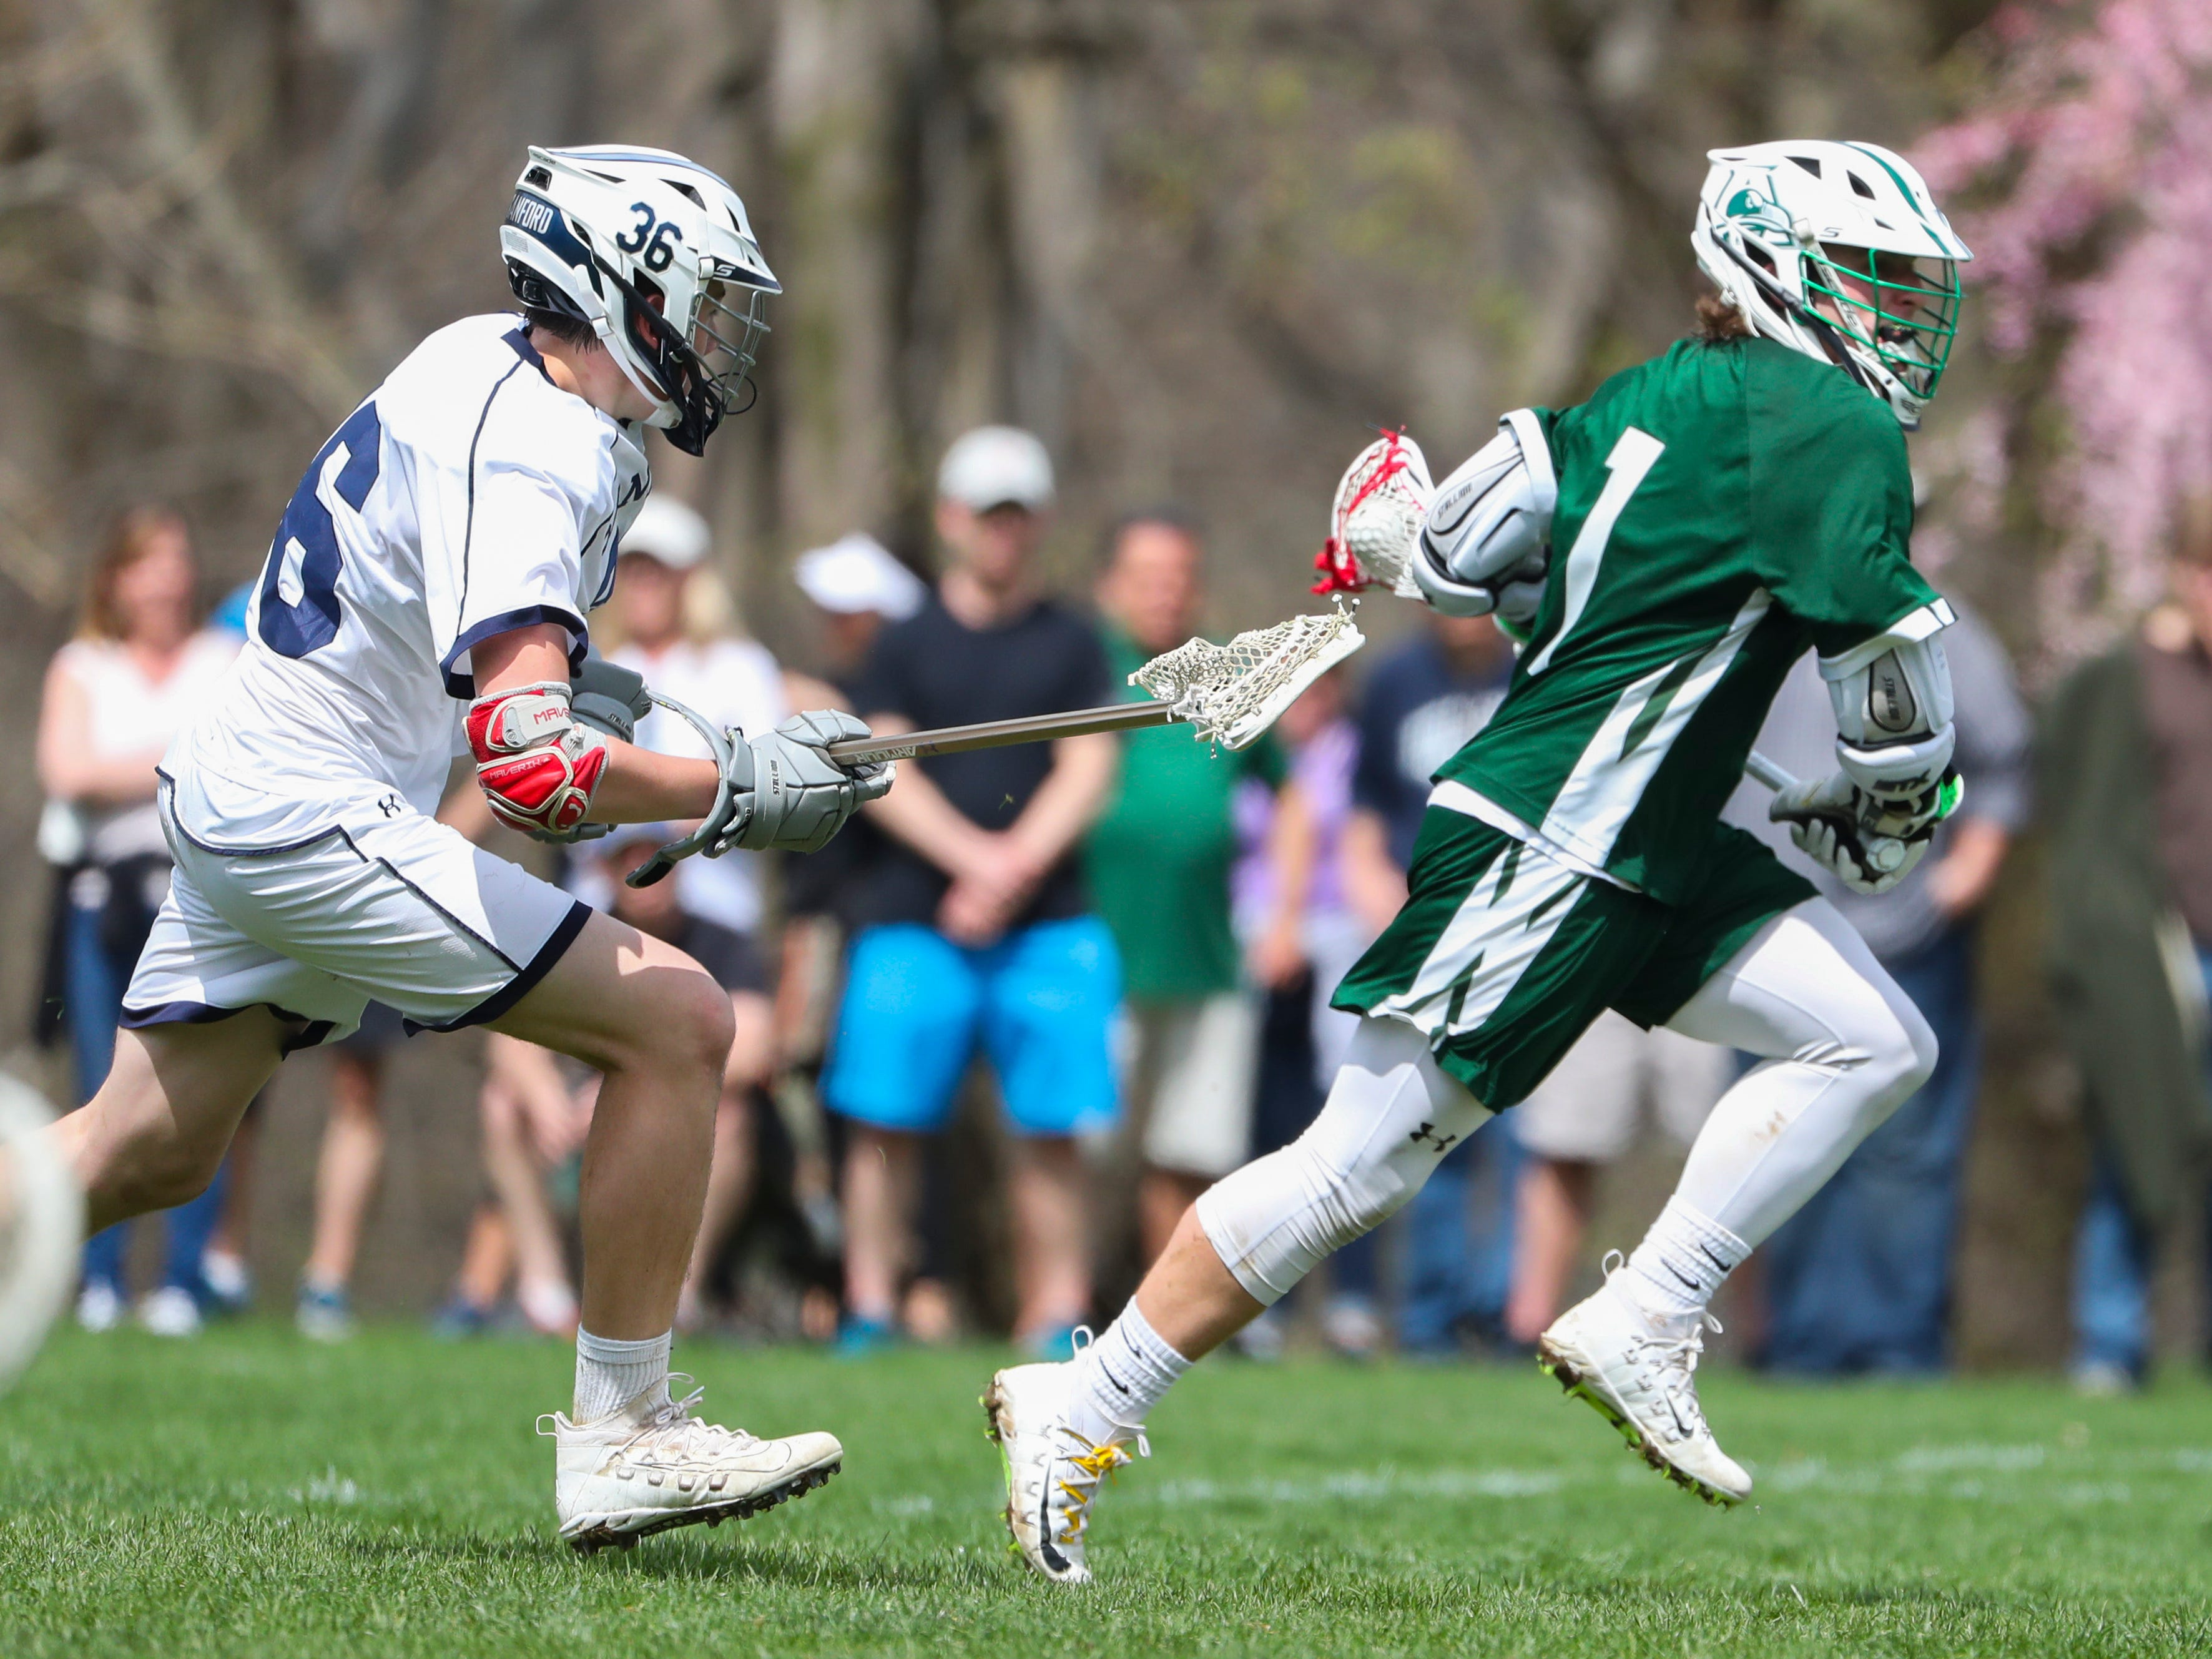 Sanford's Kyle Keller (left) pursues Archmere's Cole Bauer in the second half of Sanford's 12-10 win Saturday.